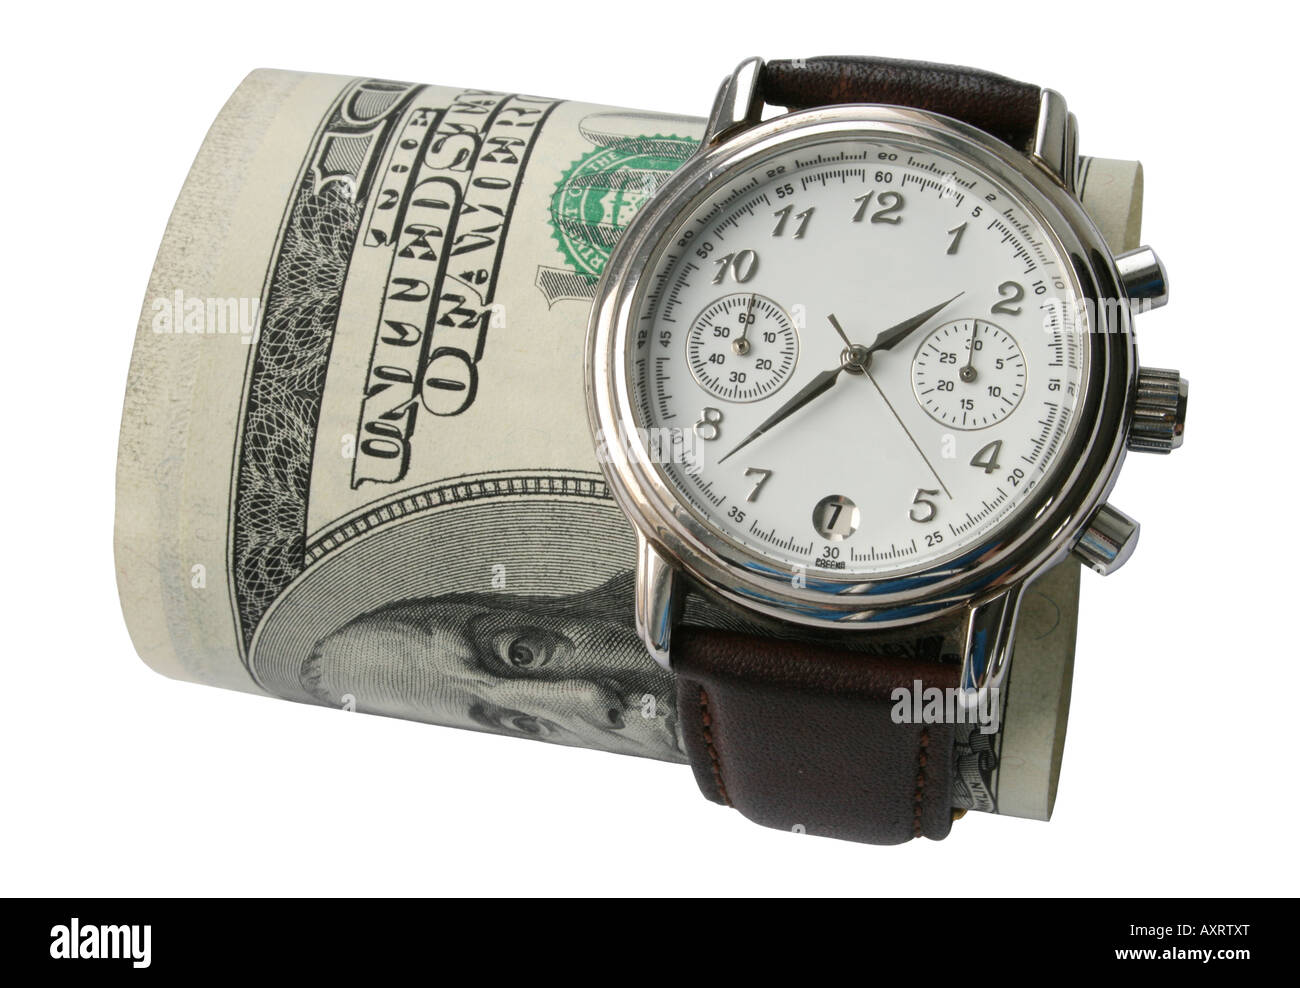 Business watch and bill of hundred dollars (isolated on white) - Stock Image